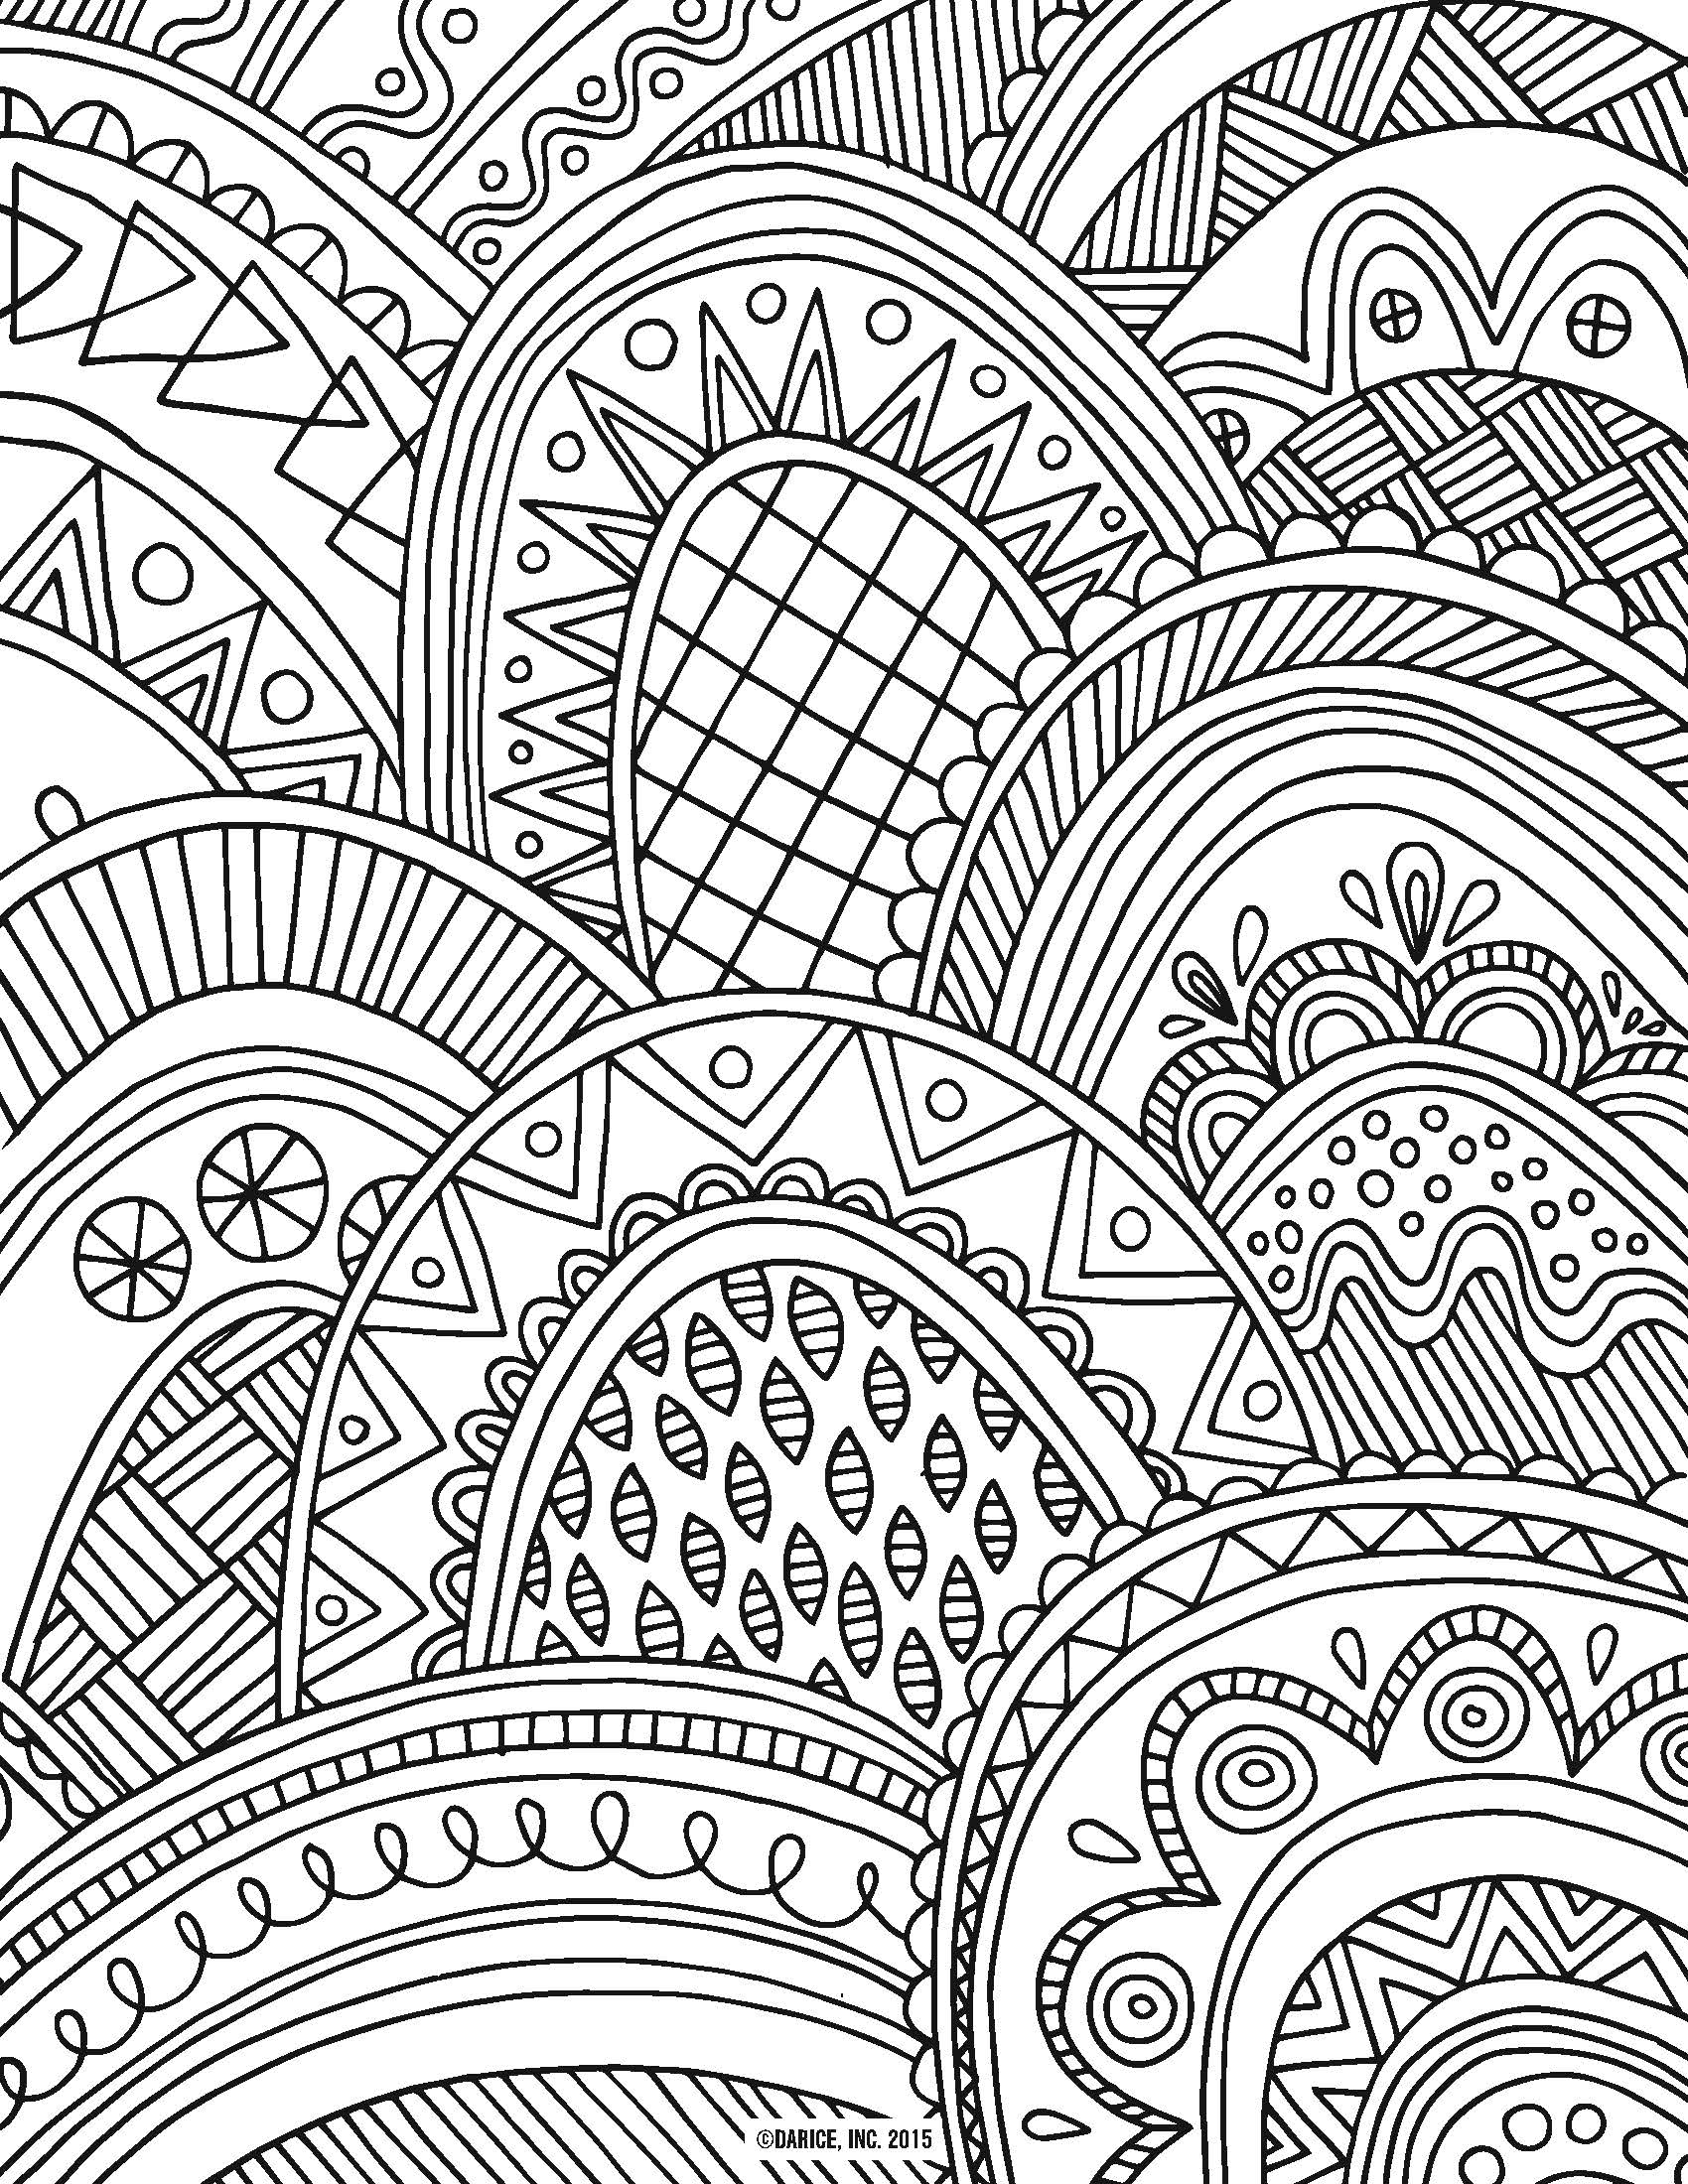 coloring patterns abstract pattern coloring page free printable coloring pages coloring patterns